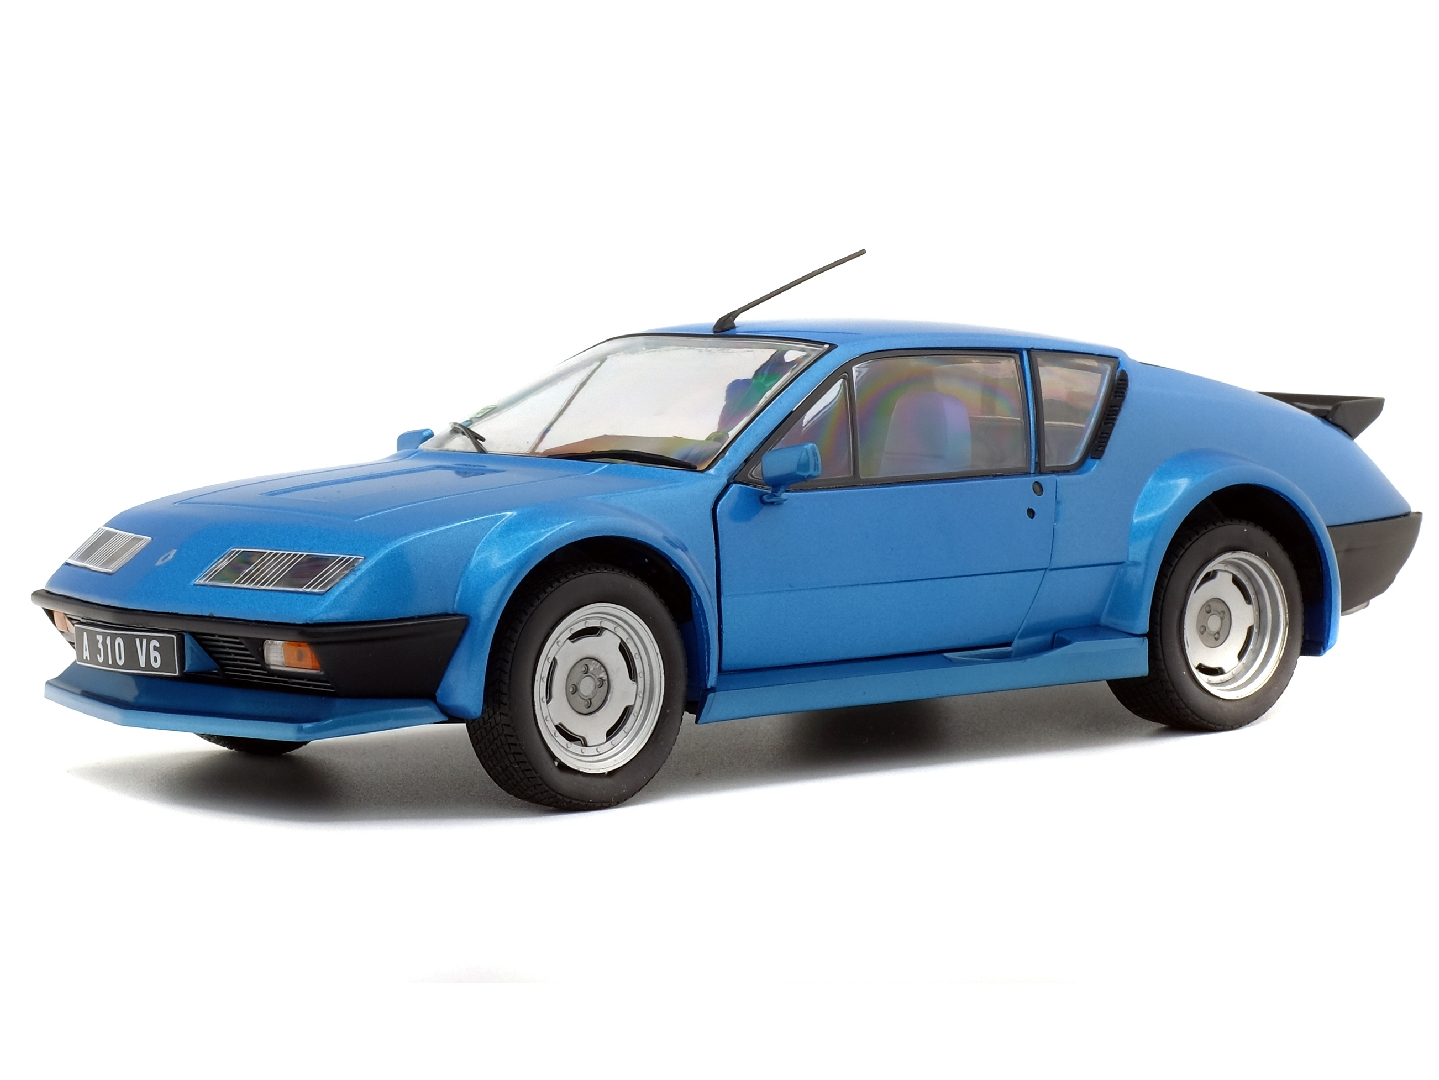 90401 Alpine A310 V6 Pack GT 1983